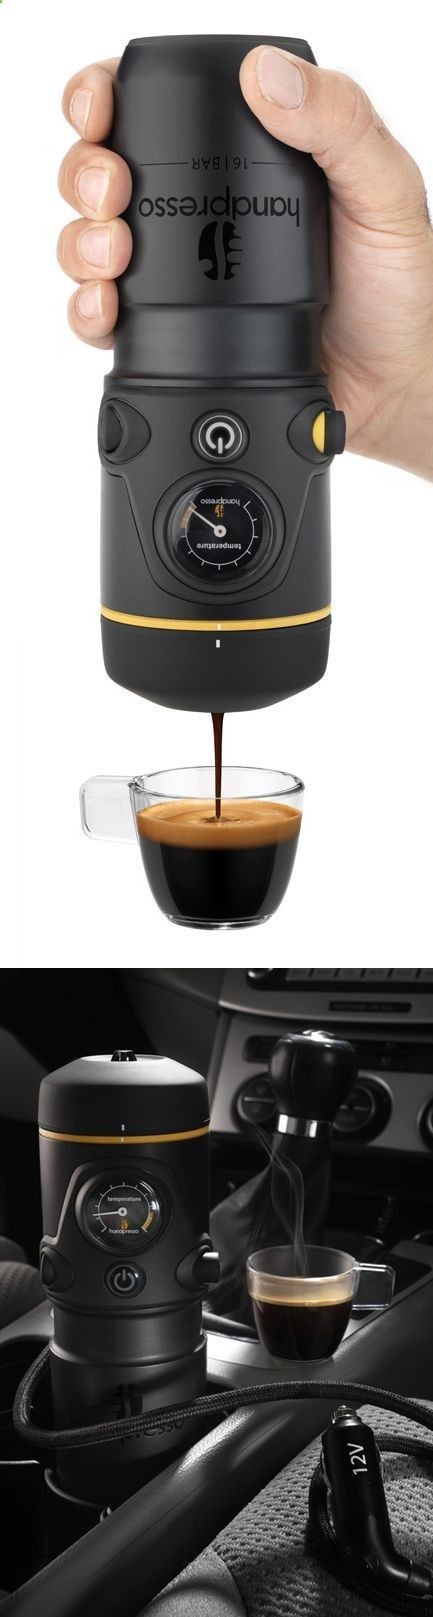 Camping Coffee Maker - Where has this been all my life? Portable Coffee Maker // simply plug the Handpresso into your car and have fresh brewed espresso on the go within minutes. Buy at www.espressooutle...